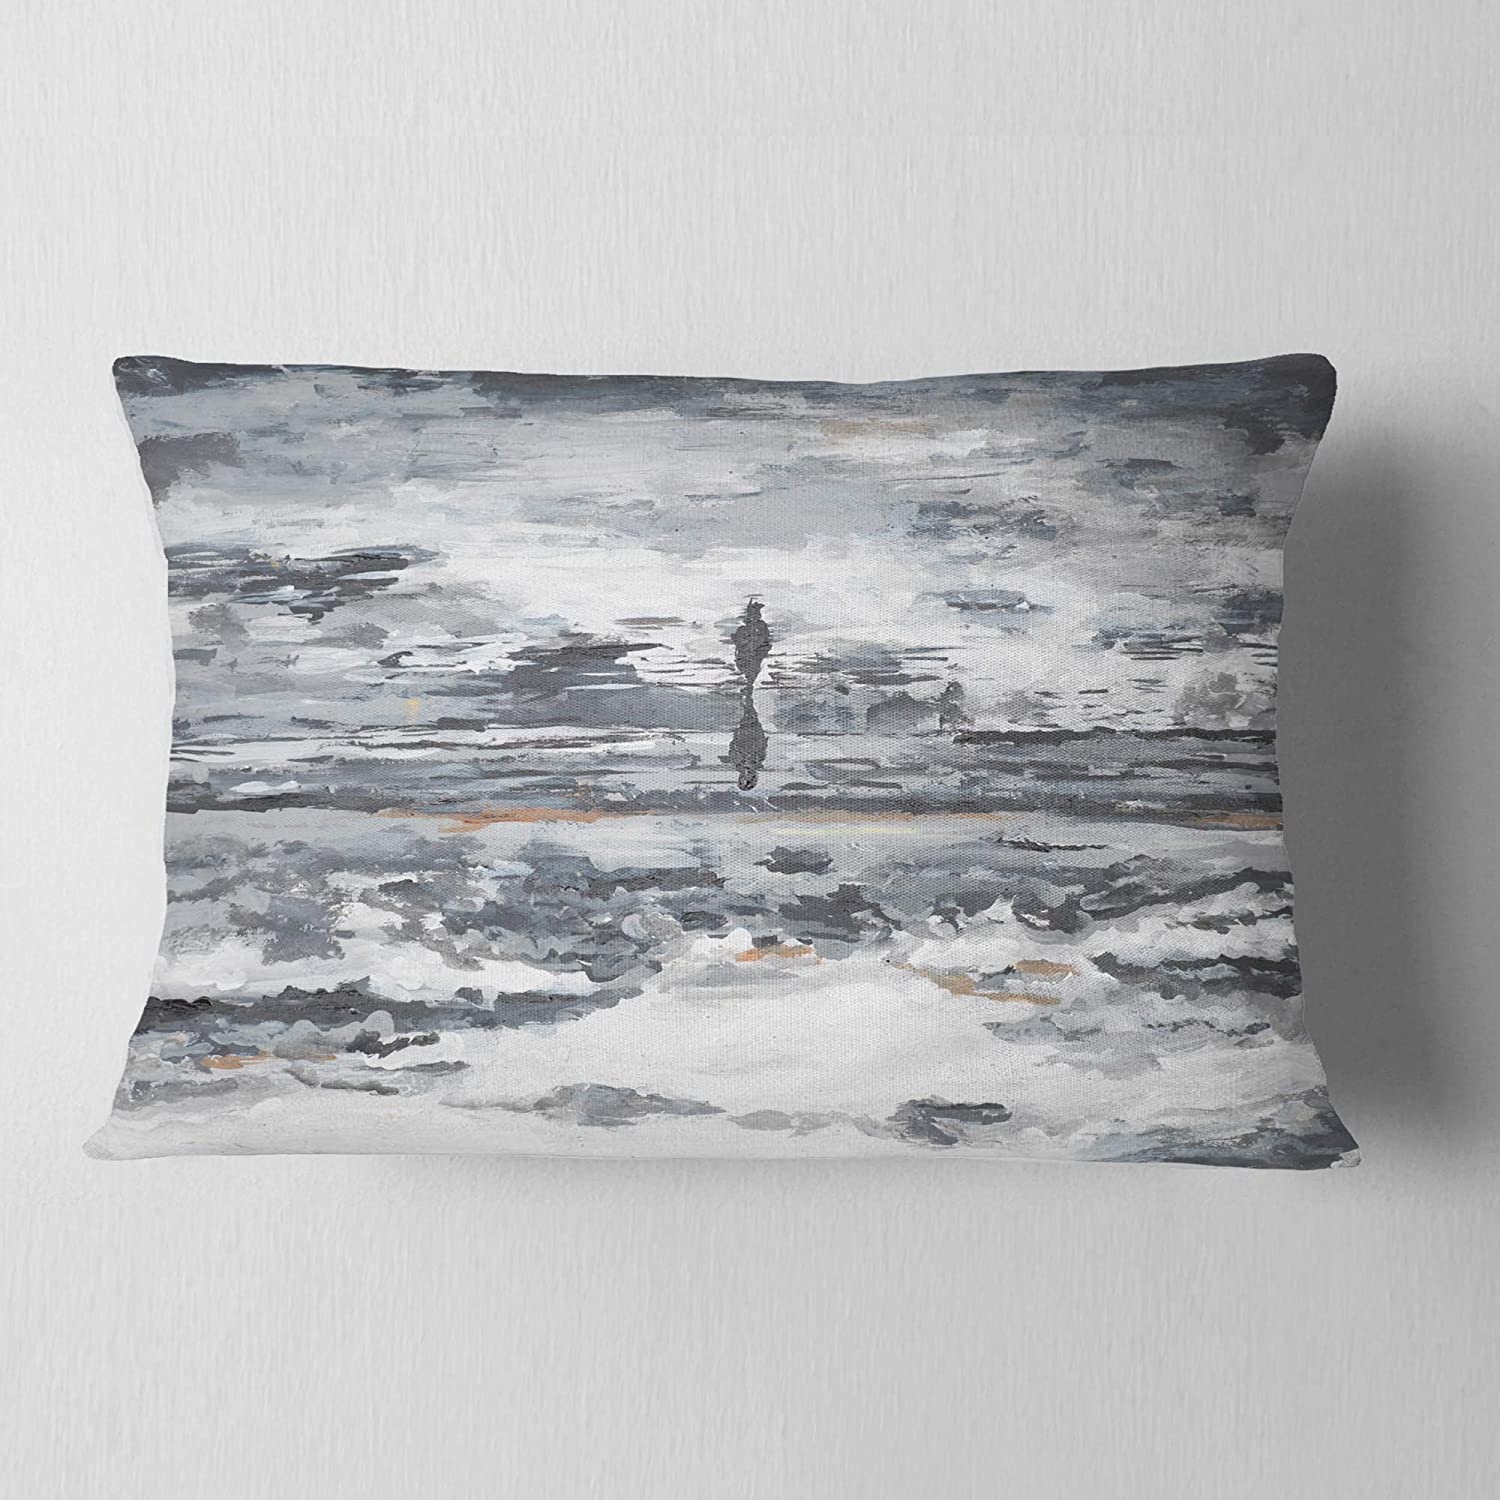 Designart Cu8507 12 20 Running Horse Through Water Abstract Throw Lumbar Cushion Pillow Cover For Living Room Sofa 12 X 20 High Quality Pillow Insert Plus Cushion Cover Printed On Both Side Amazon Ca Home